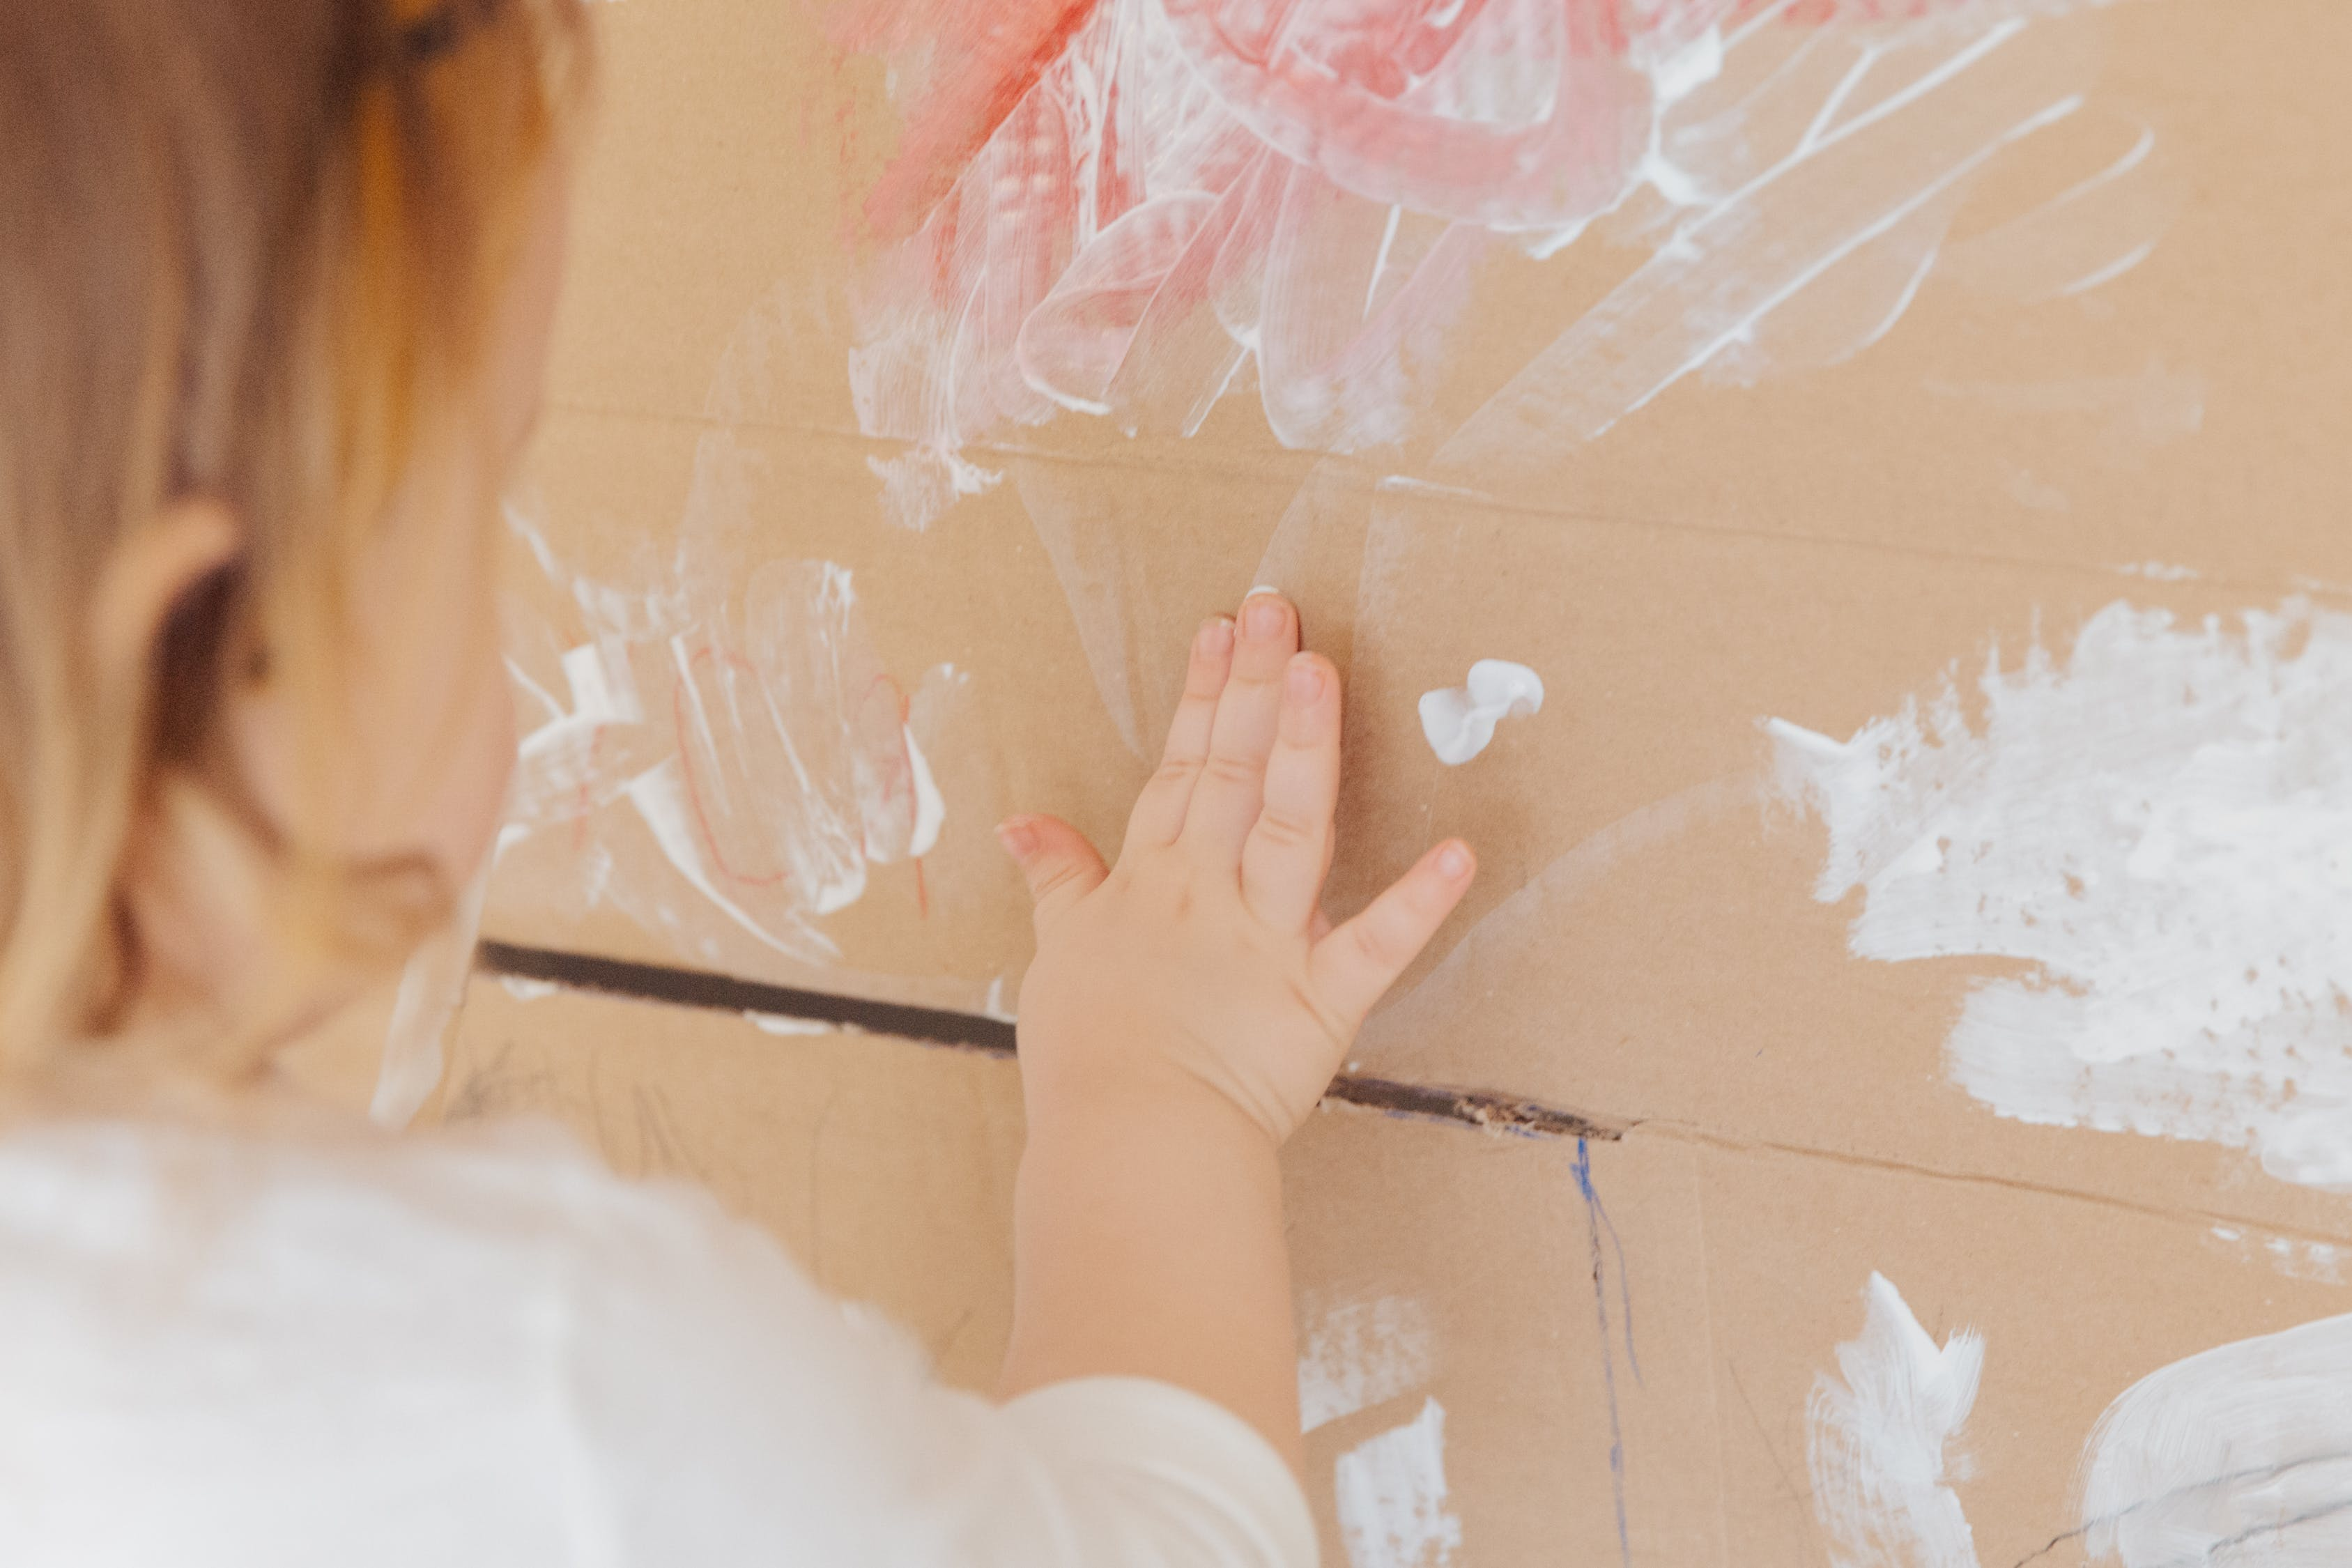 painting, finger-painting